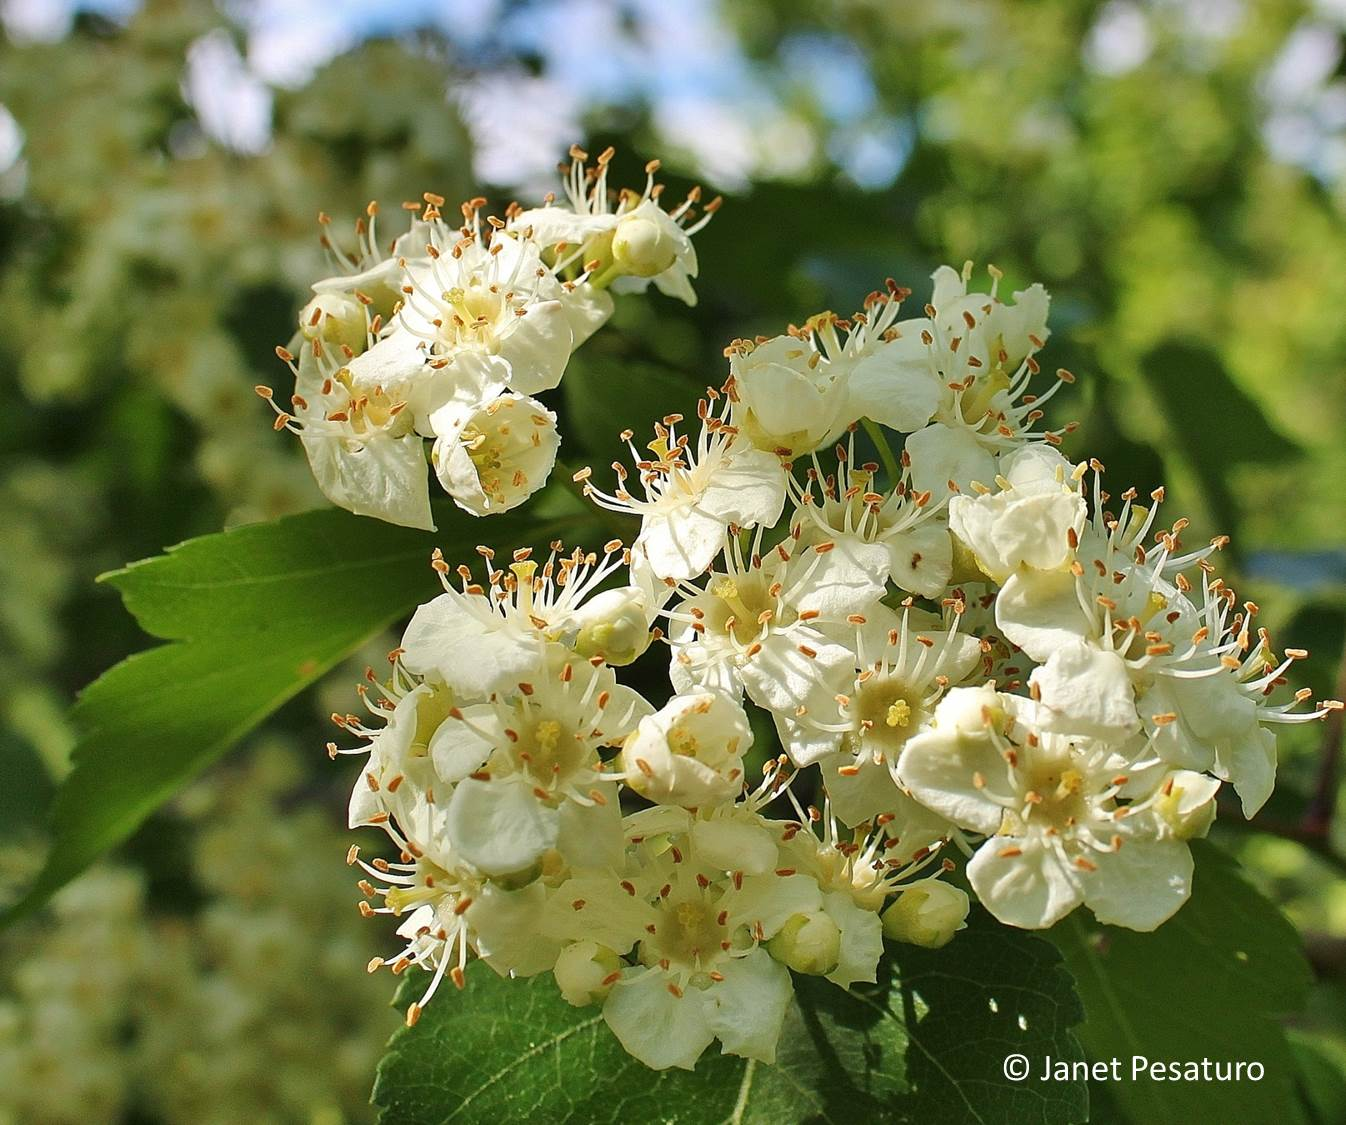 Hawthorn berries: identify, harvest, and make an extract |